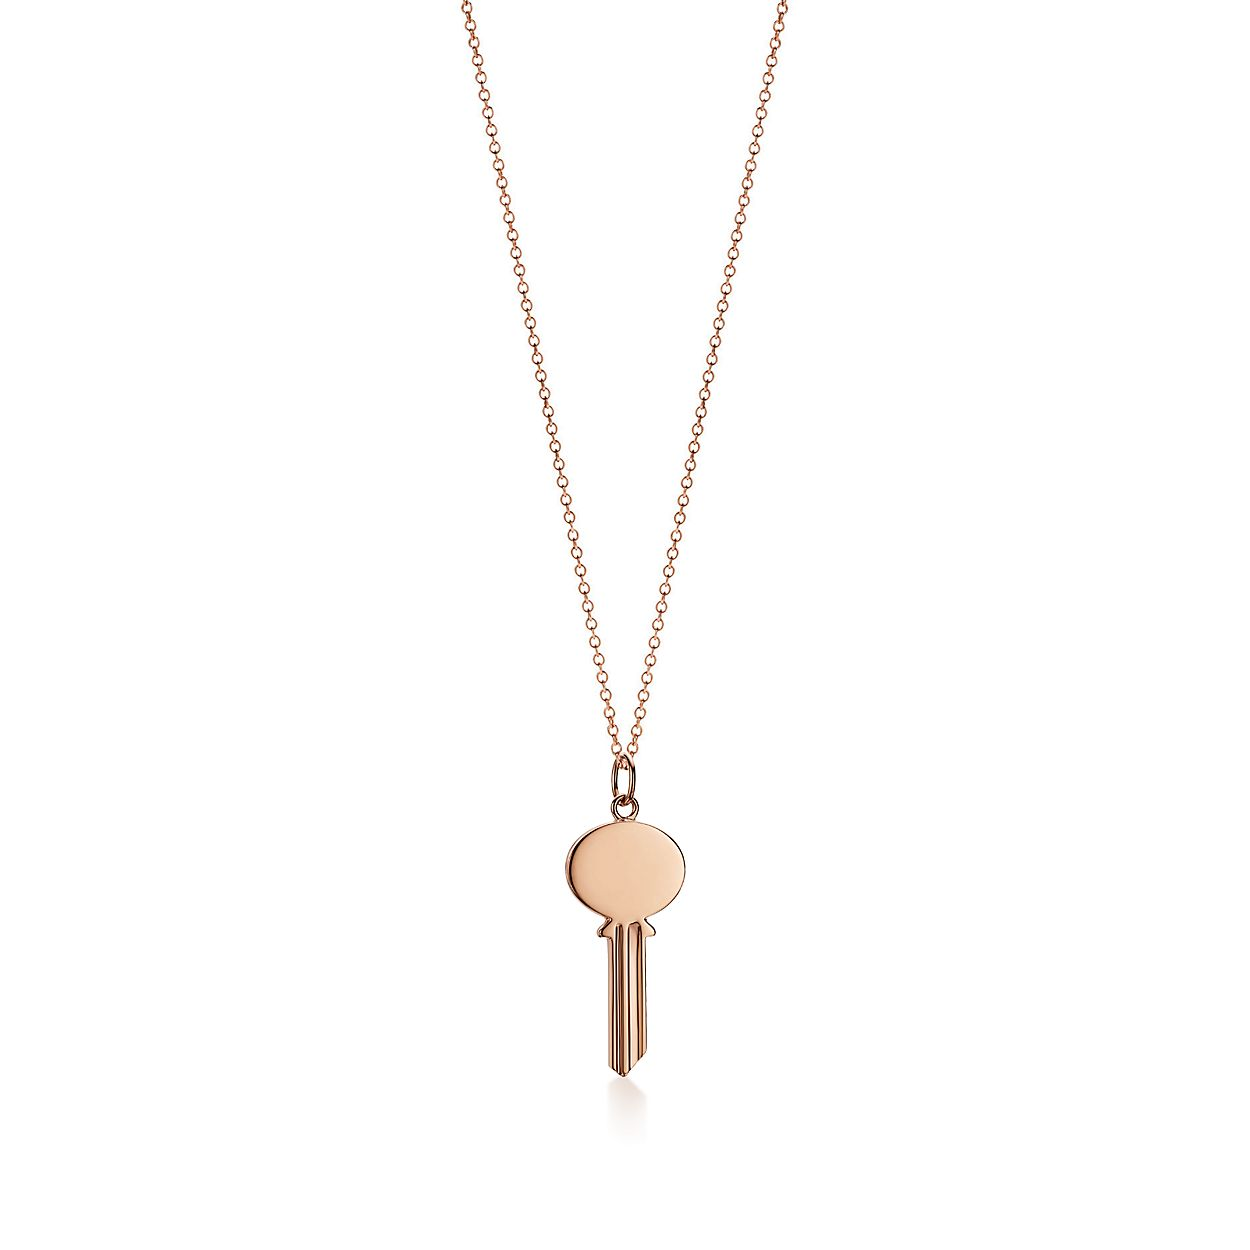 Tiffany Keys oval key pendant in 18k rose gold, small Tiffany & Co.